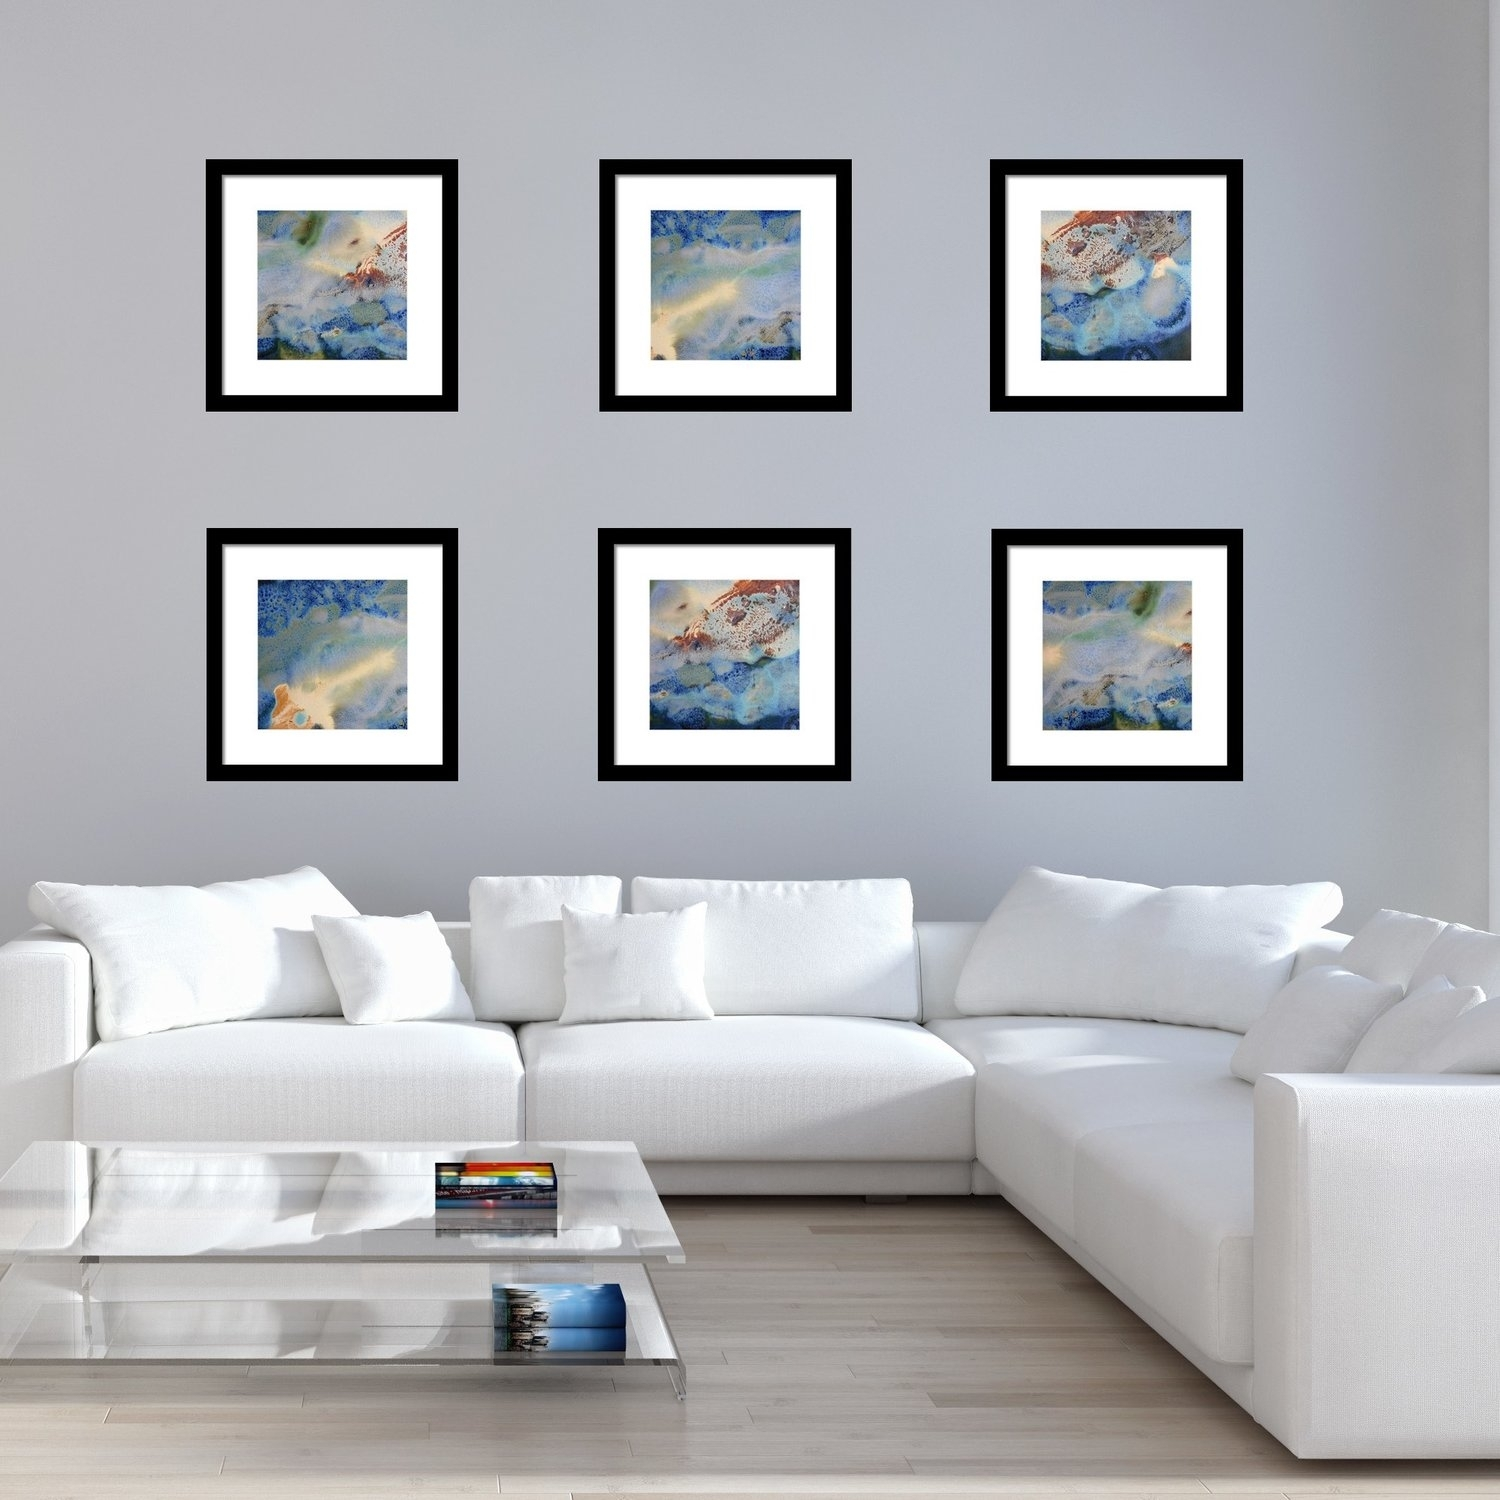 Set Of 6 Abstract Framed Prints – Square #17, 18 & 19 | White Inside Current Abstract Framed Art Prints (View 13 of 15)